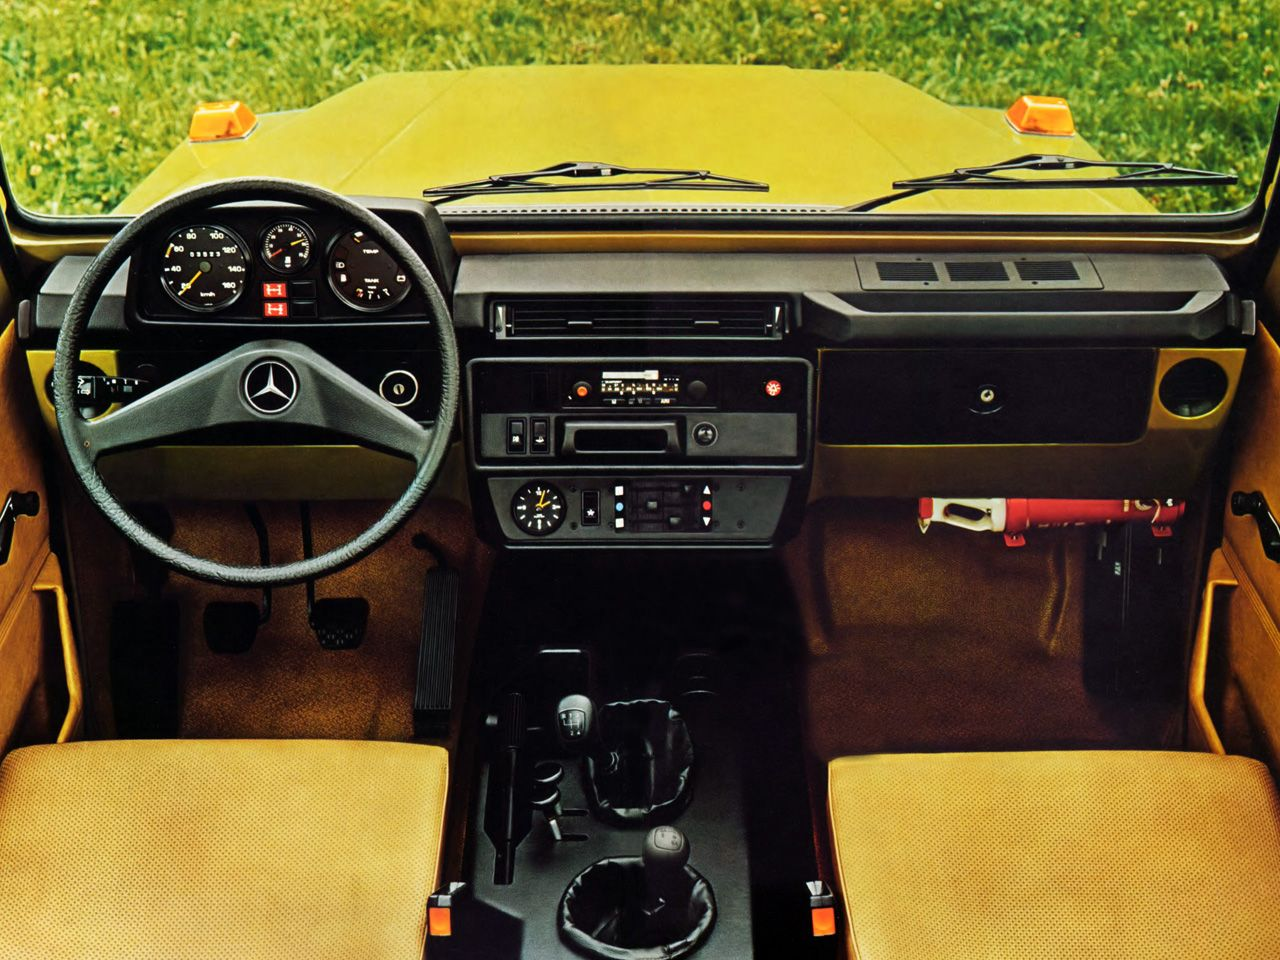 Mercedes benz 280 ge swb w460 1979 01 1990 pictures to pin - 1979 Mercedes Benz 230 G Cabrio